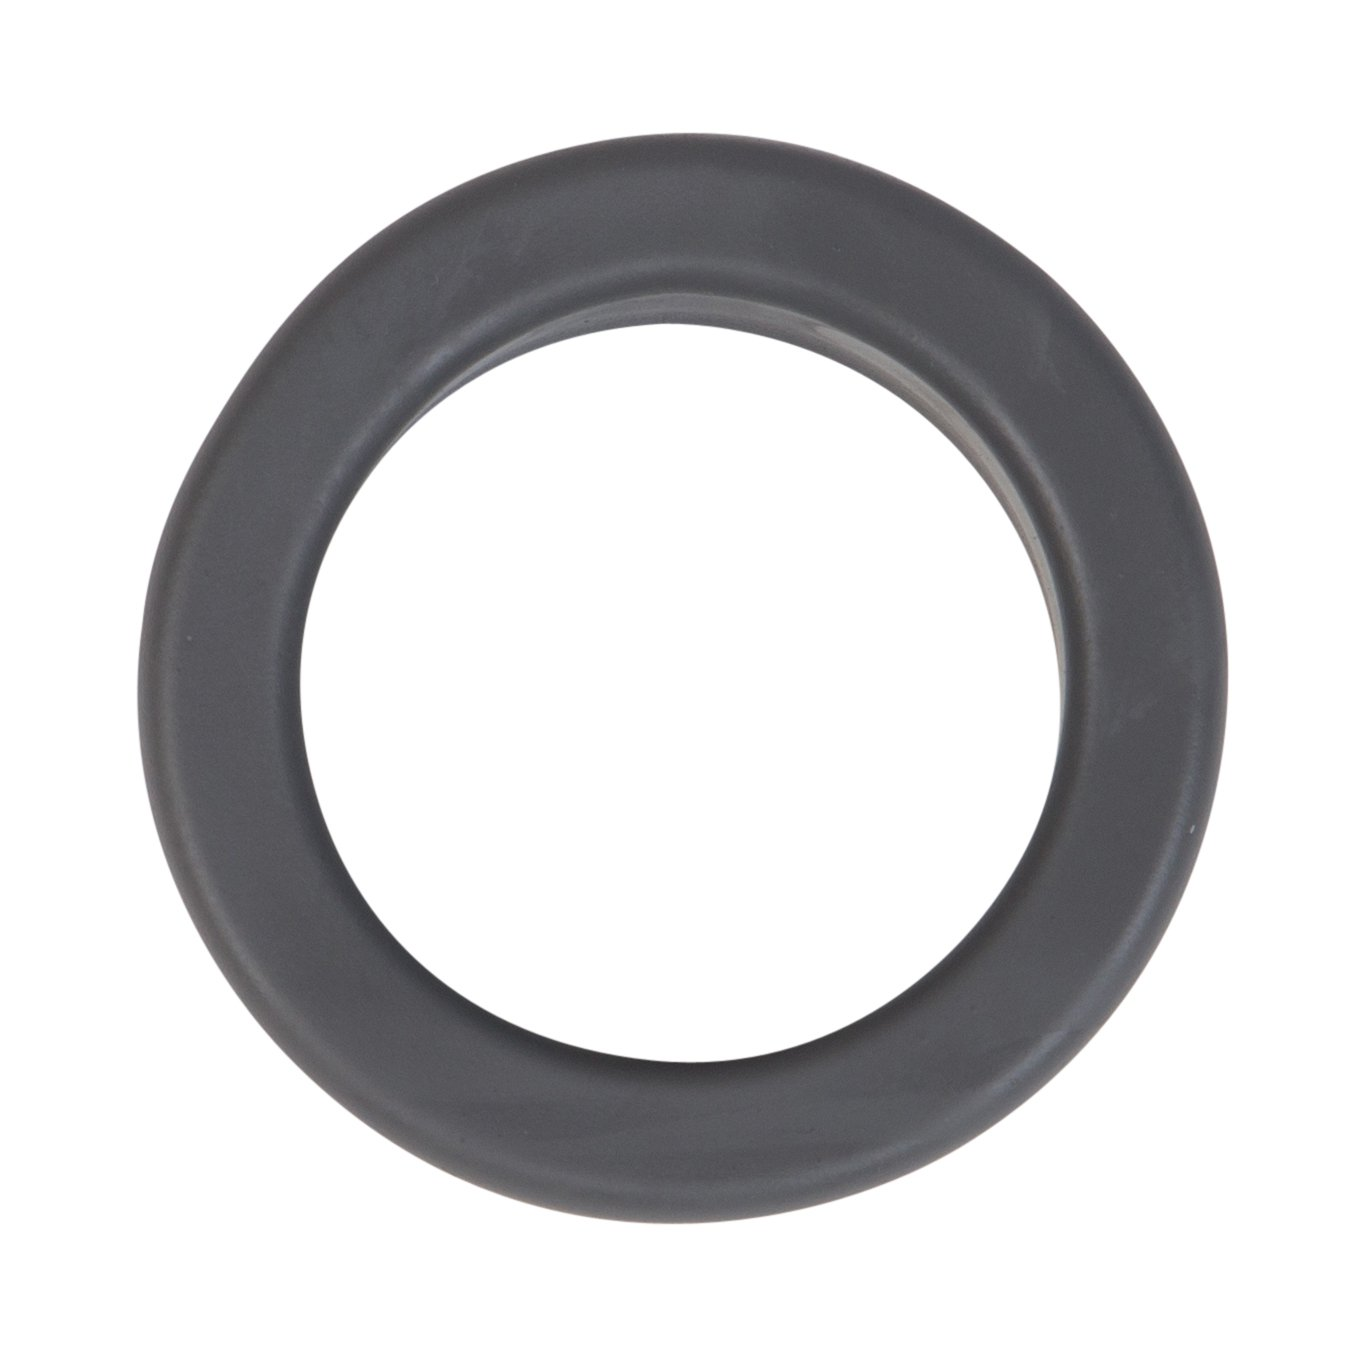 Vacuum Pump Accessories, Bushings for Manual or Automatic Penis Pumps for Men - Adapter Bushings for Pos-T-Vac and Erec-Tech Pumps (A - Large 1 7/8'')